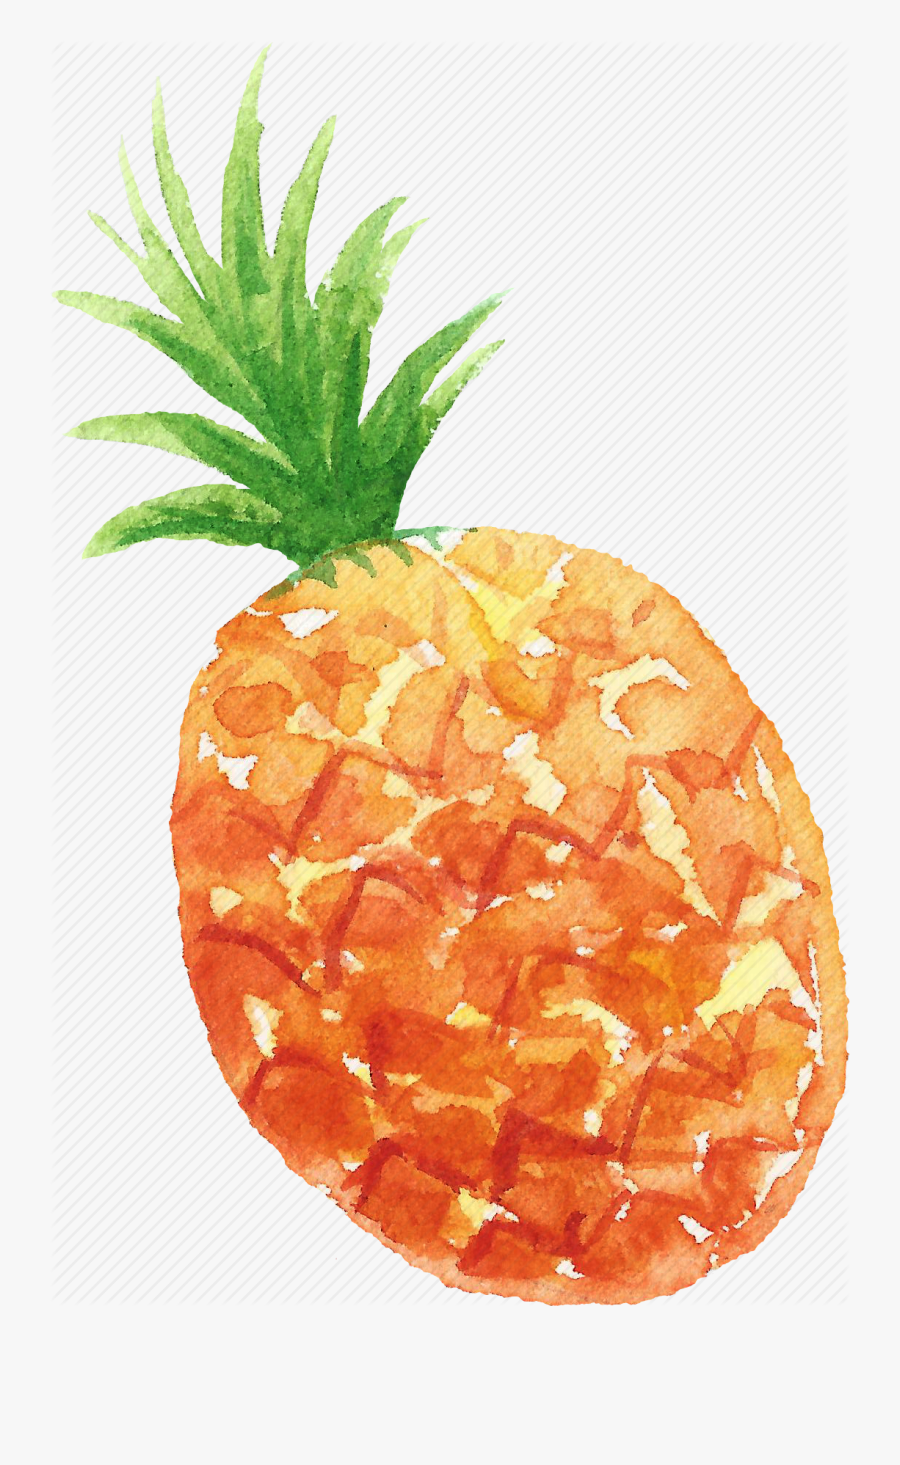 Cuisine, Food, Fruit, Fruits, Pineapple, Watercolor, - Watercolor Pineapple With Transparent Background, Transparent Clipart